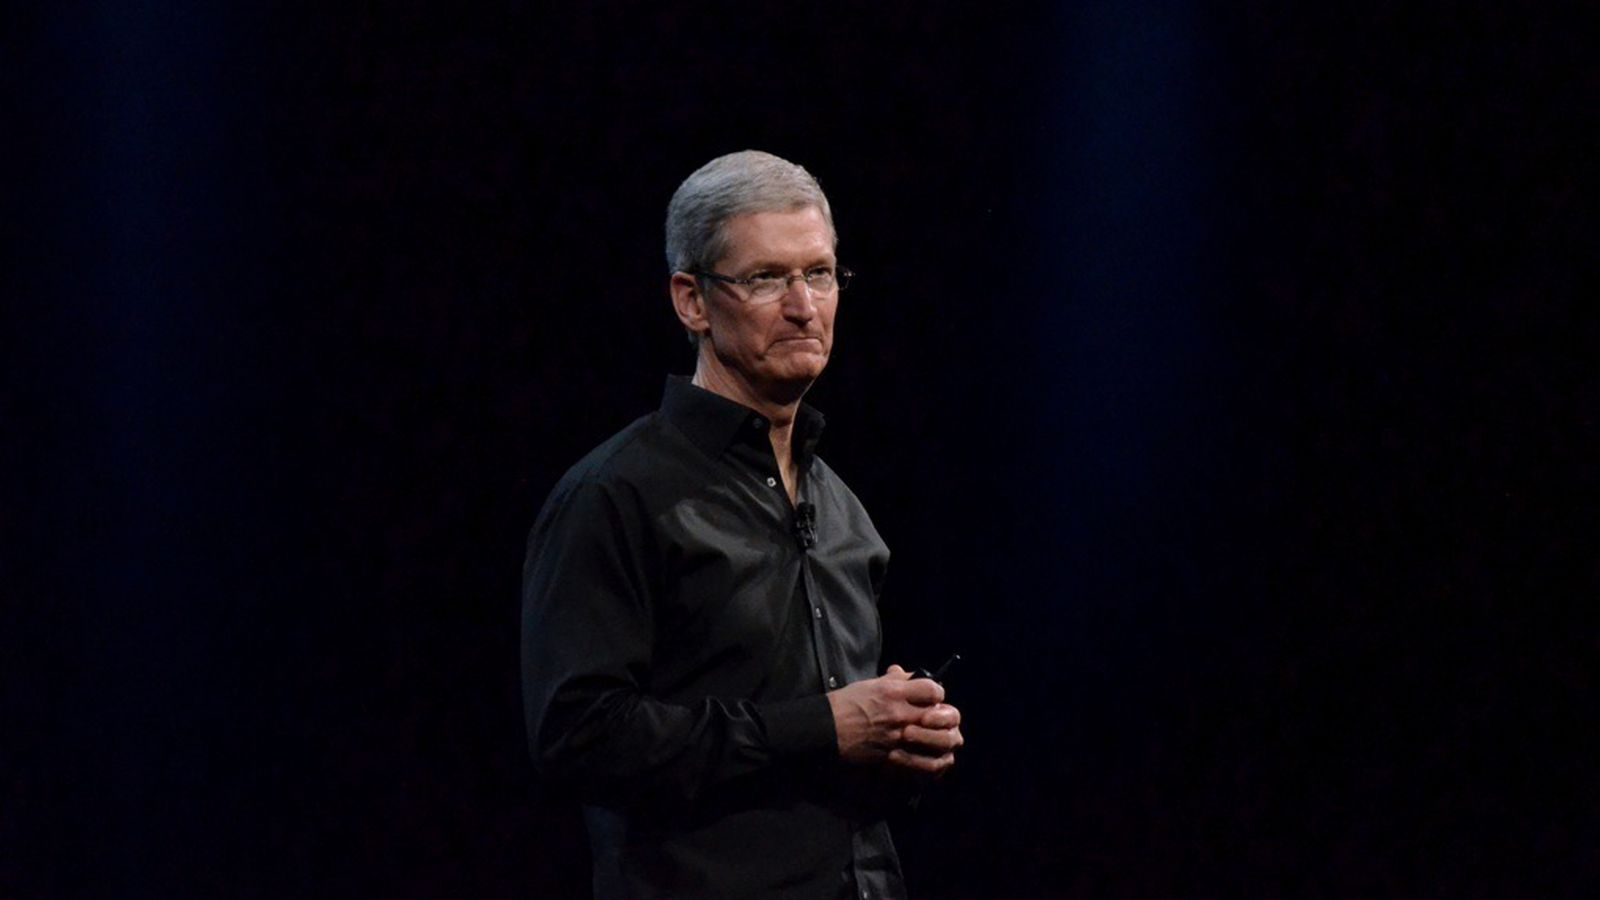 Tim Cook says Nokia died because it didn't innovate ...